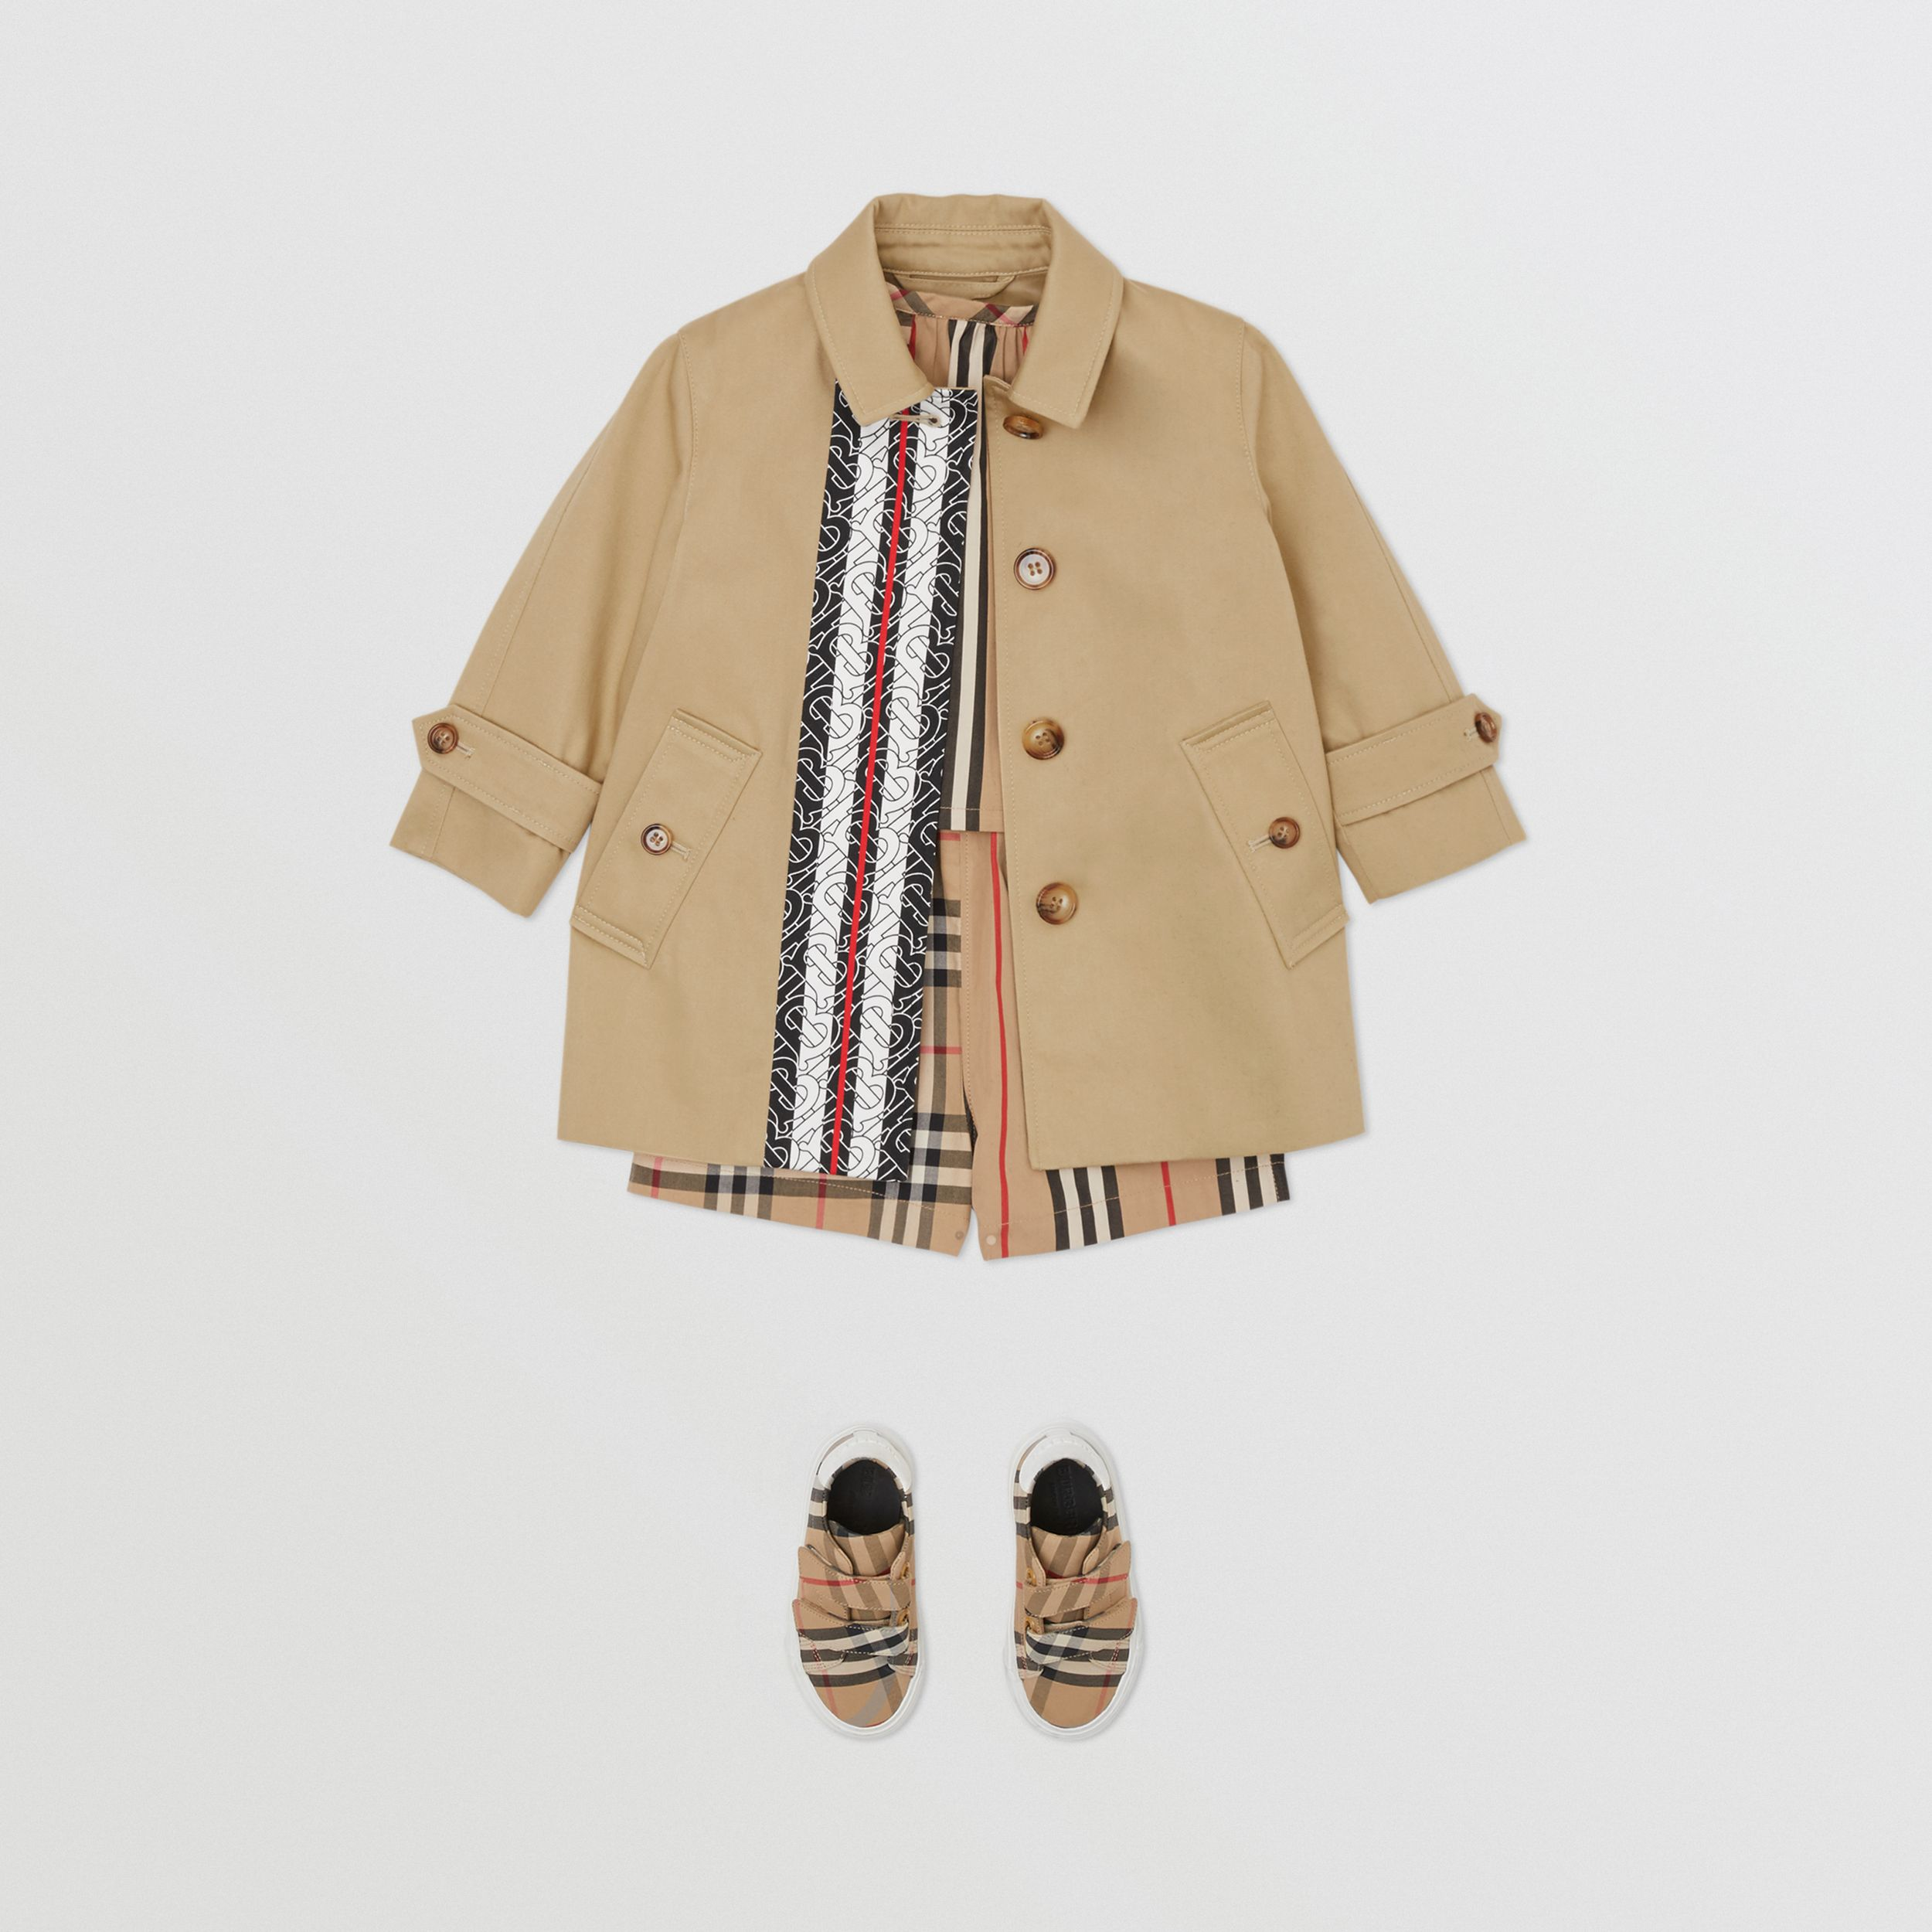 Monogram Stripe Print Cotton Car Coat in Honey - Children | Burberry United Kingdom - 3